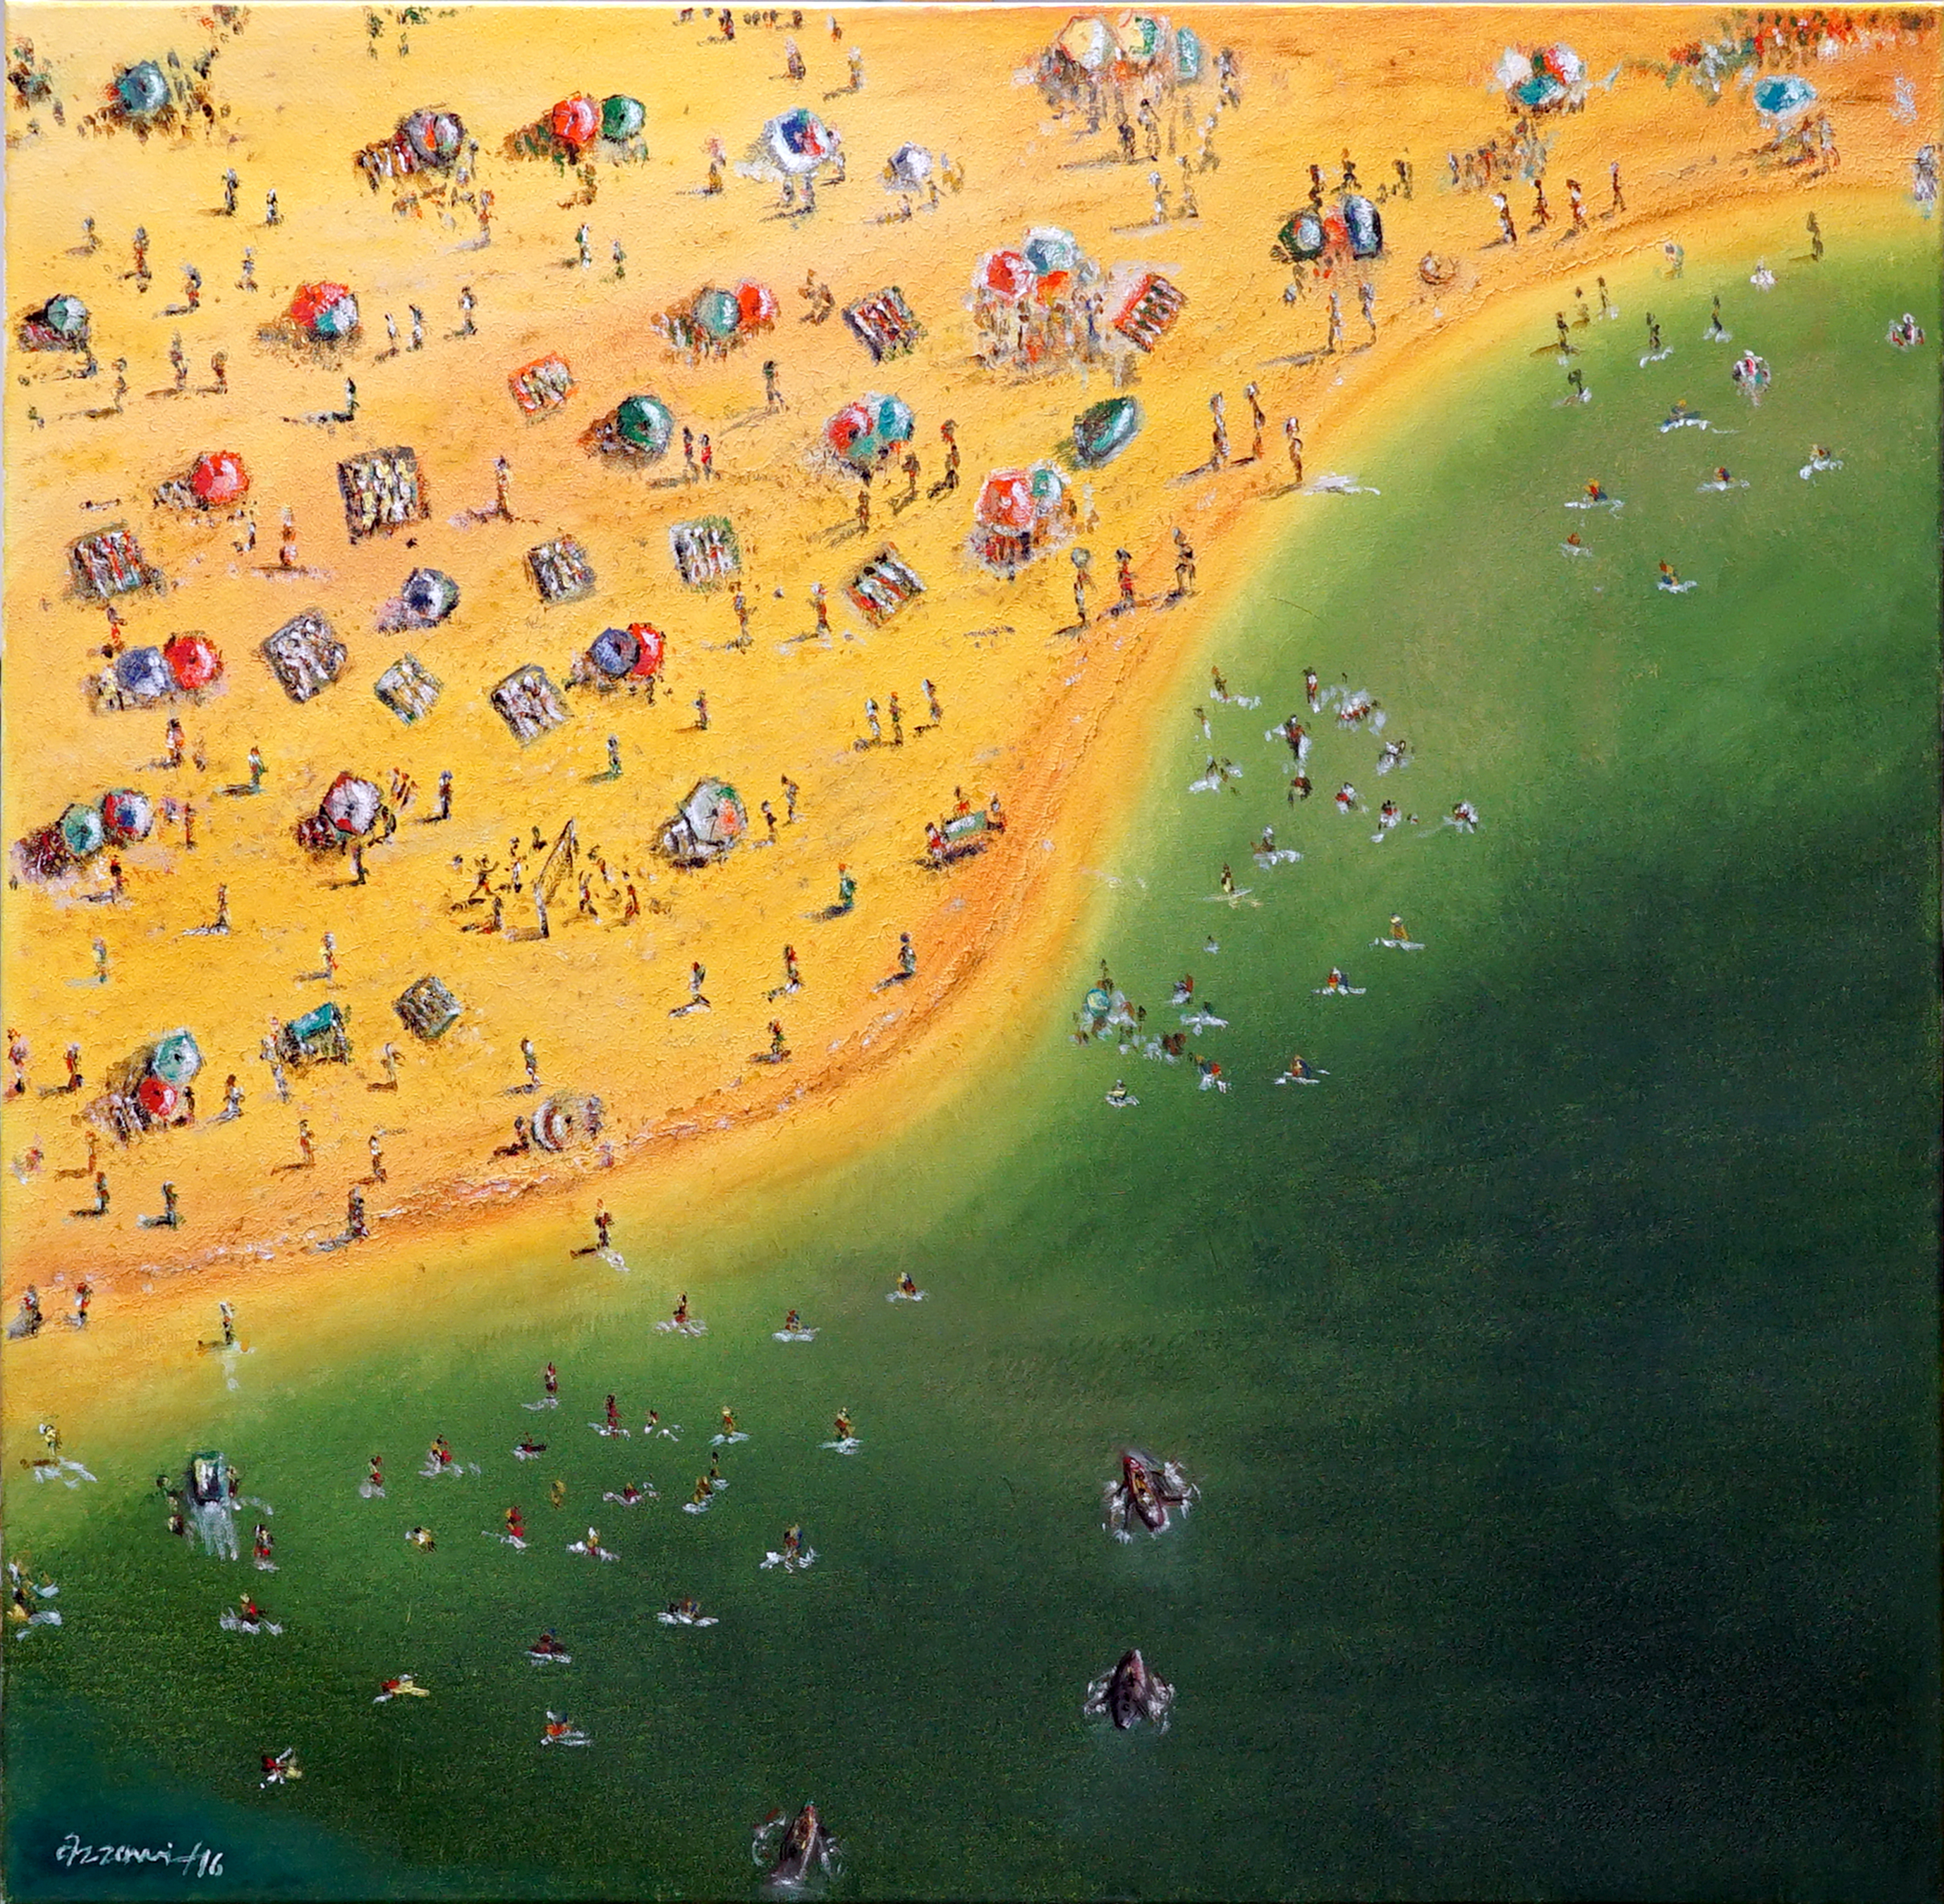 beach vacation 100x100 cm, oil on canvas